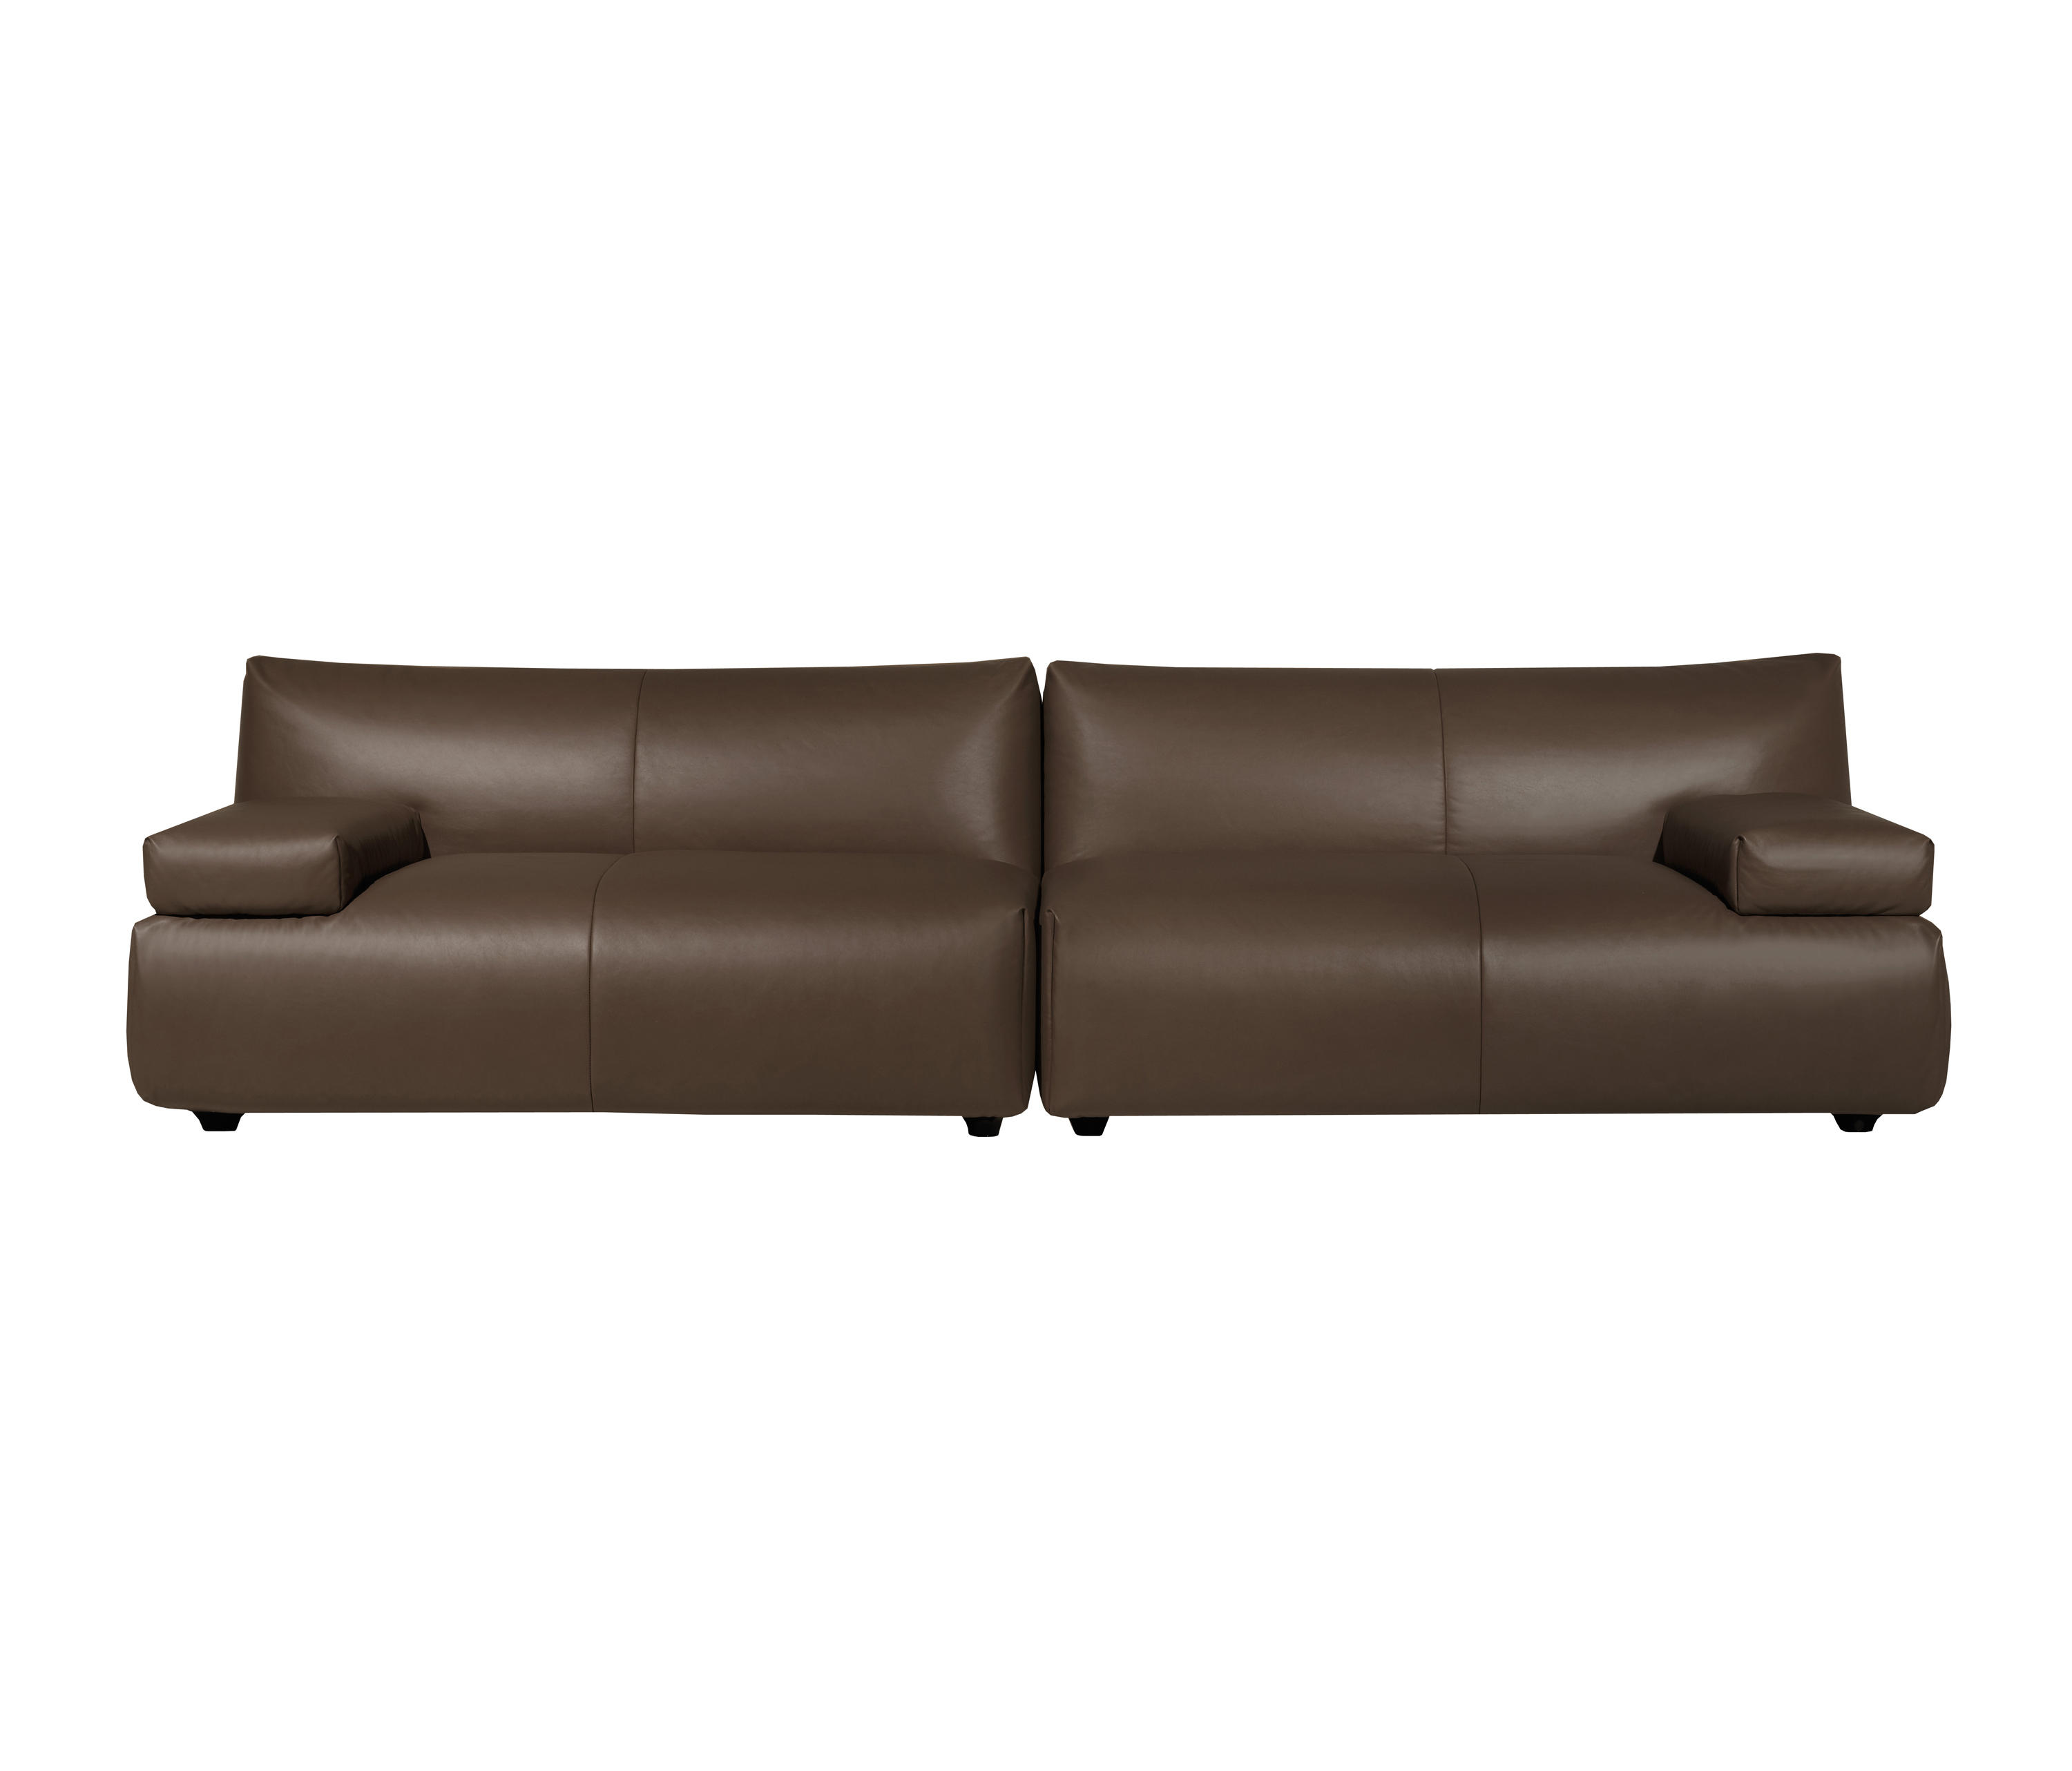 u sectionals small of and soft full shaped with sectional tan size chaise leather corner sofa living room recliner couch couches